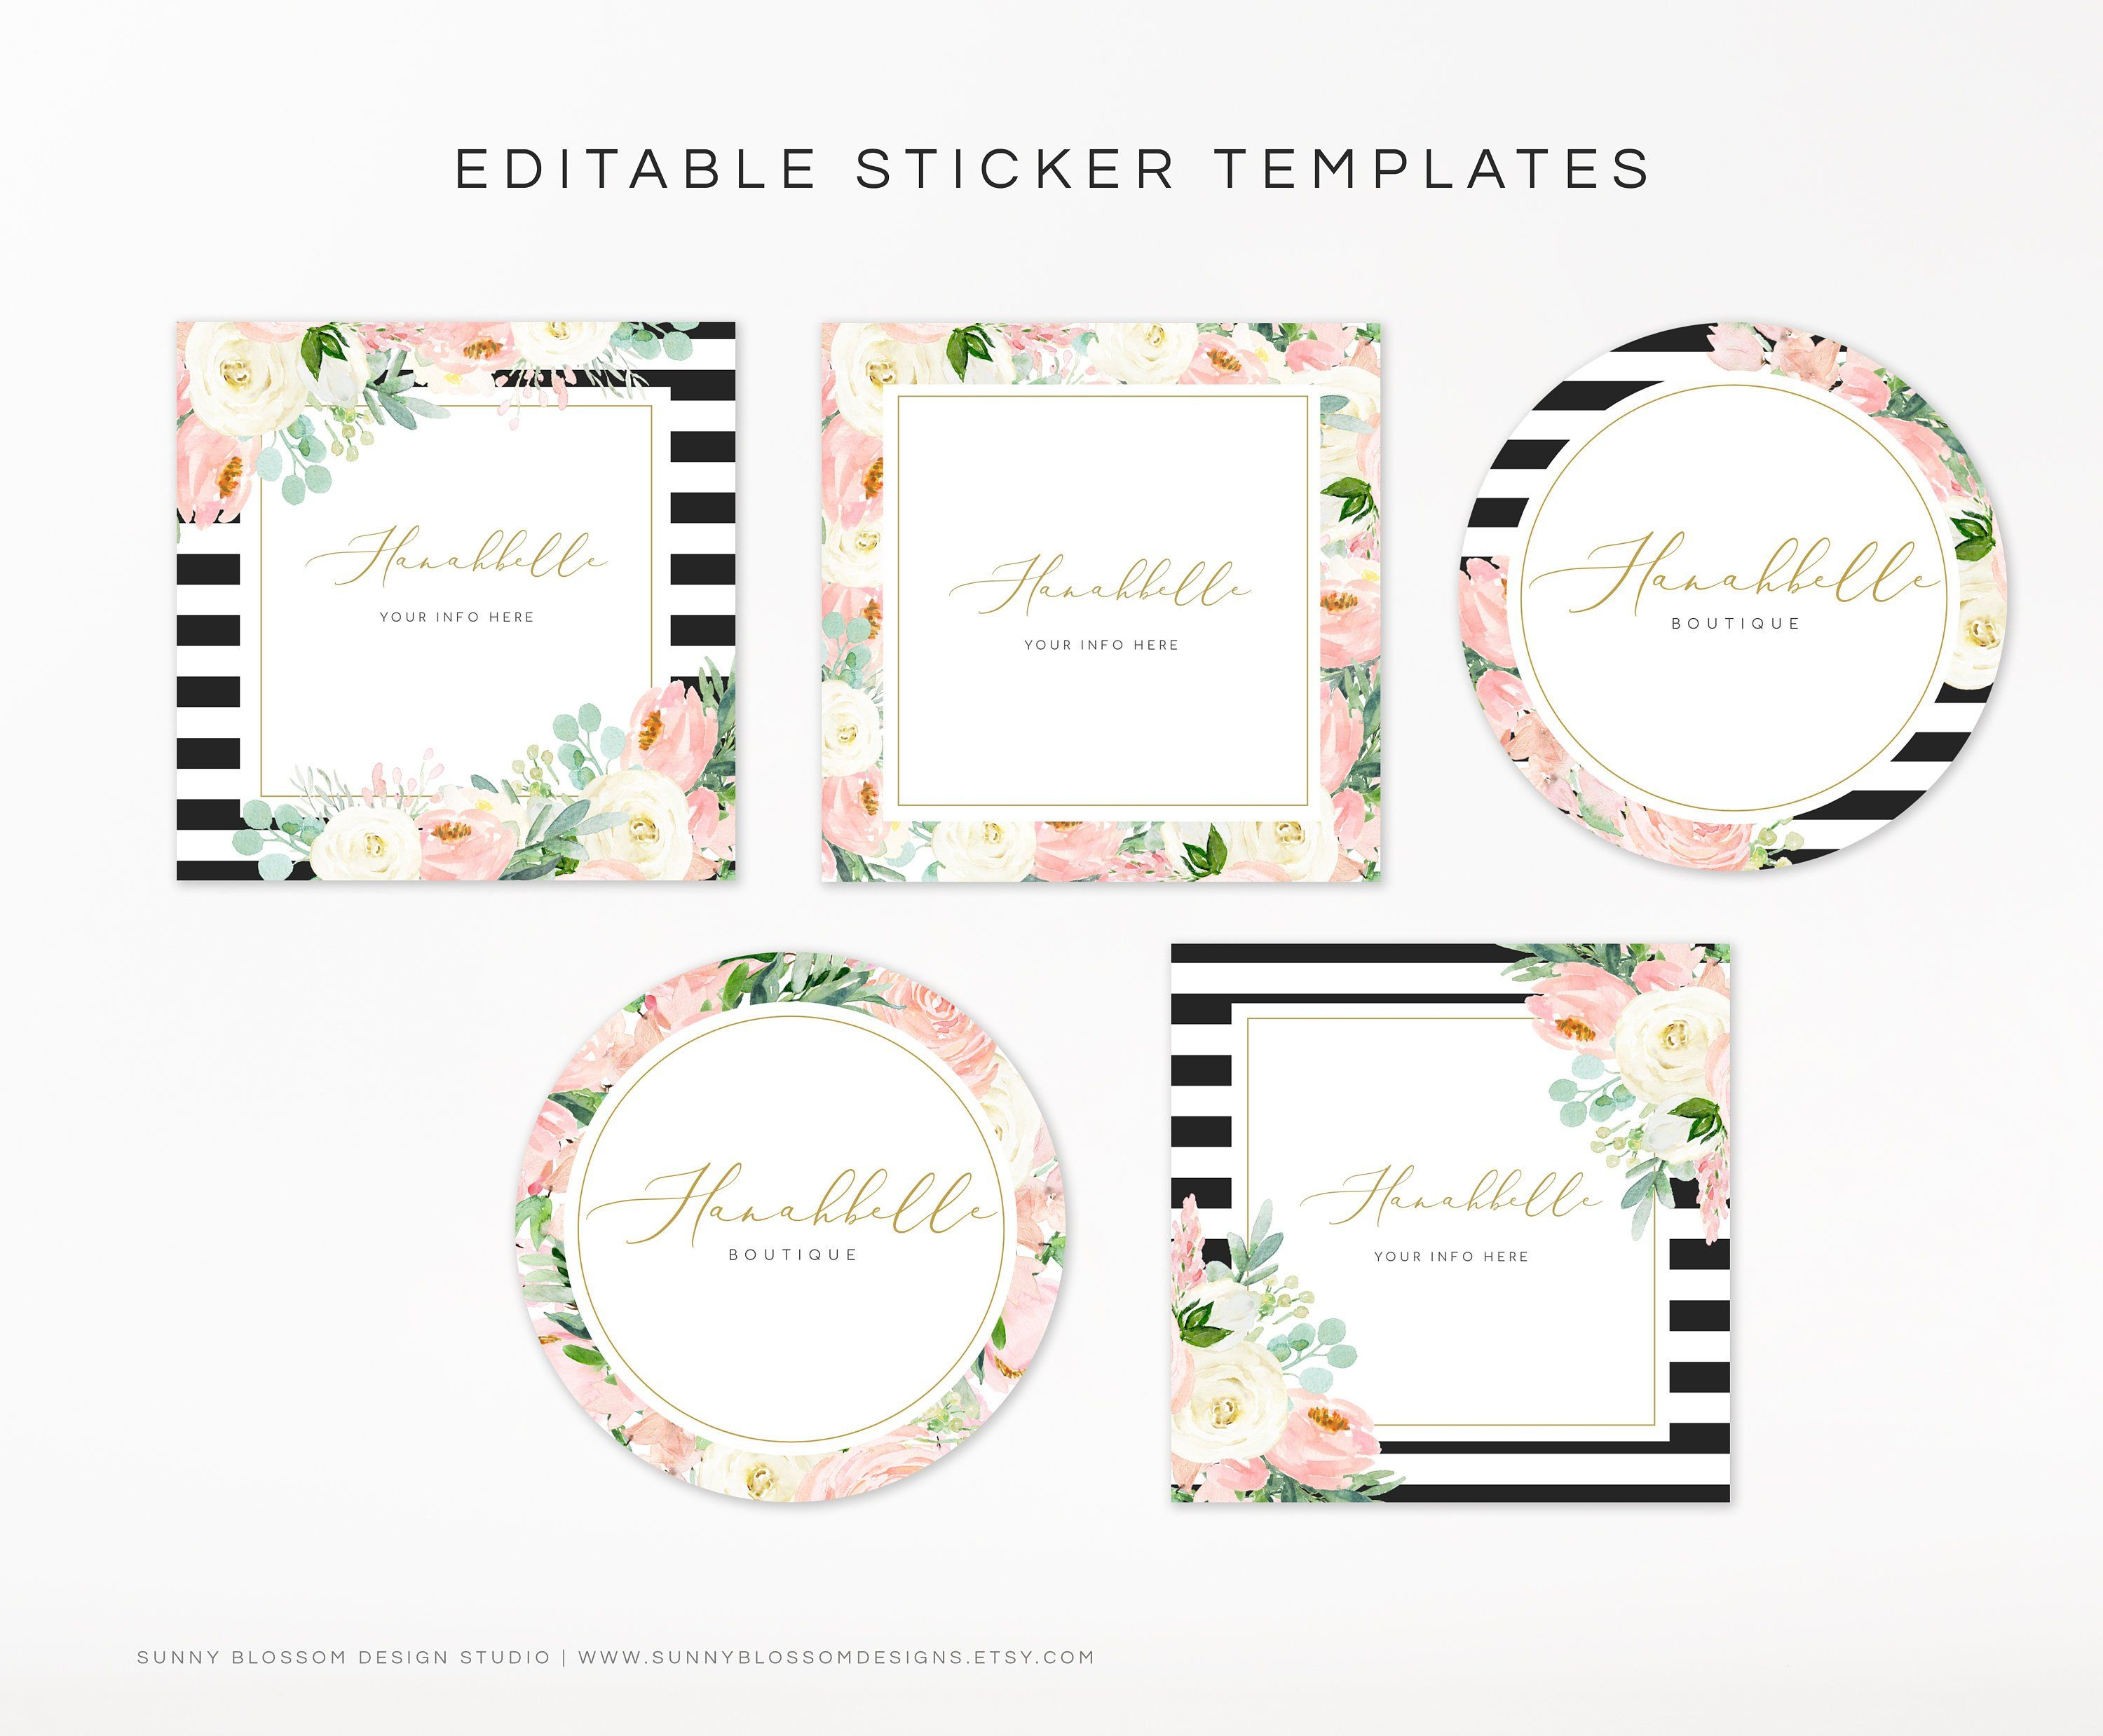 Editable Sticker Template Boutique Stickers Watercolor Flowers Stickers Cute Boutique Stickers Labels Editable Sticker Templates In 2021 Sticker Template Free Printable Tags Templates Free Printable Tags